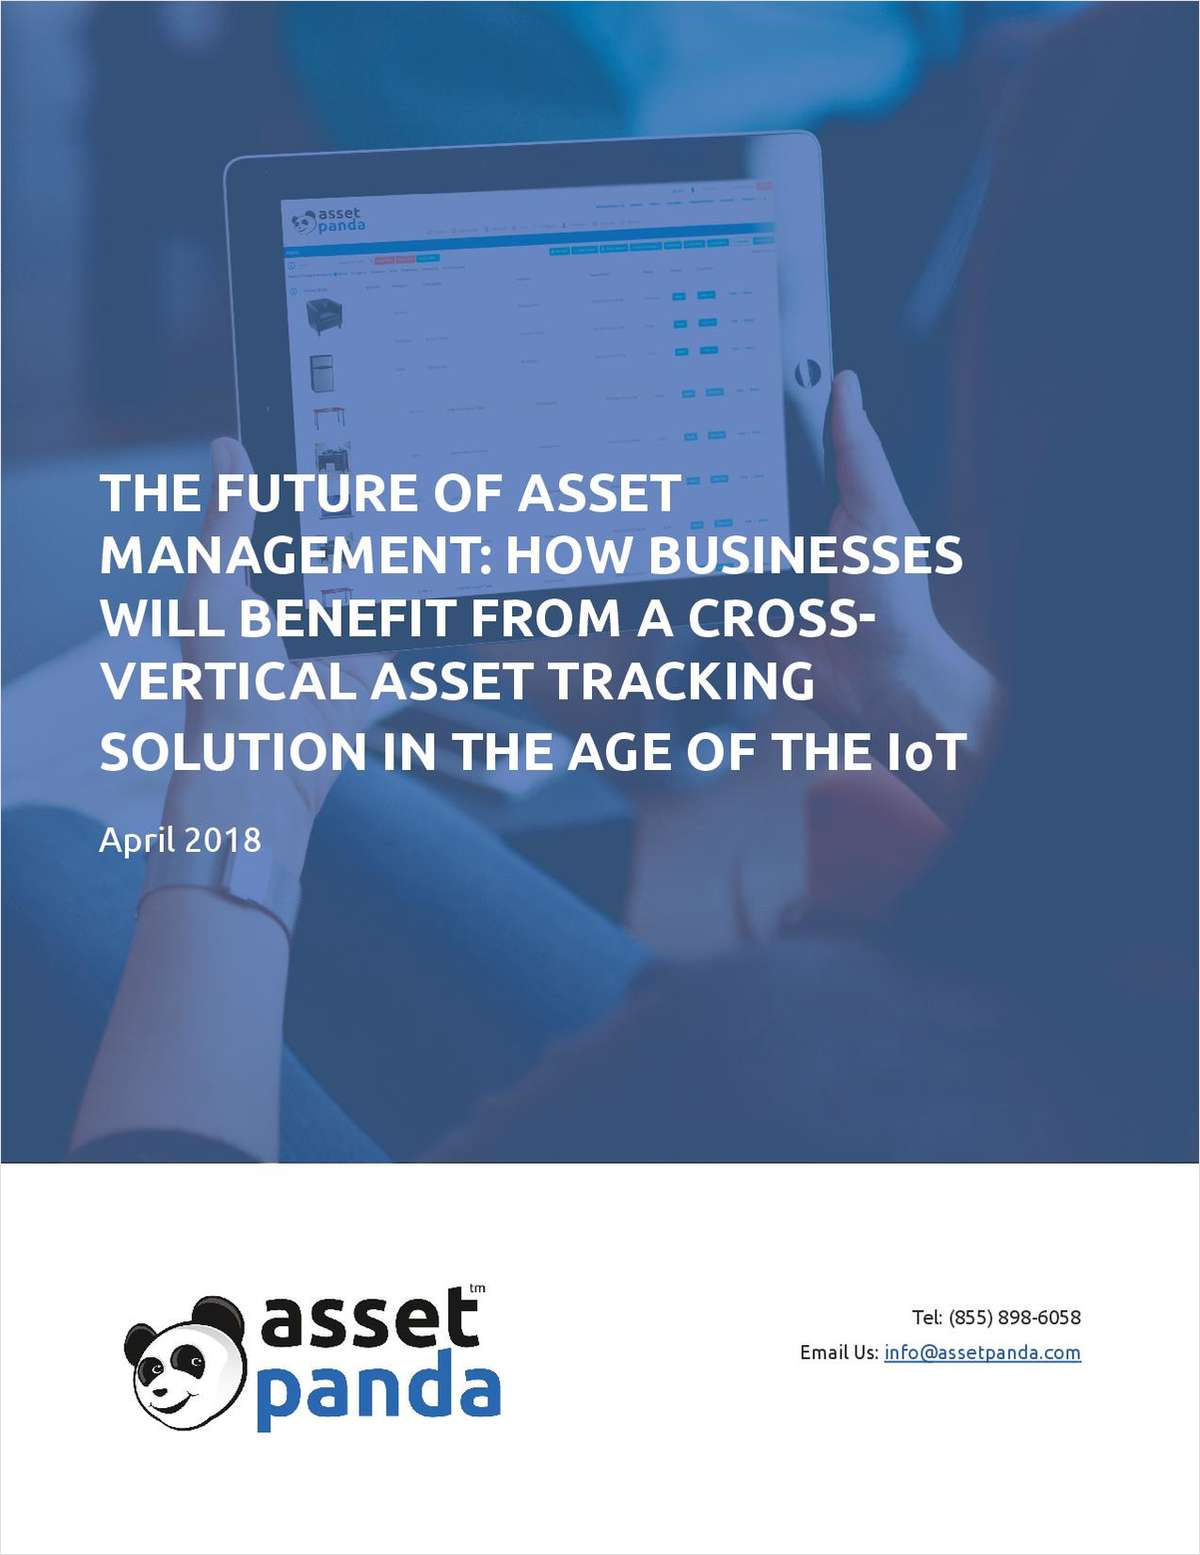 The Future of Asset Management